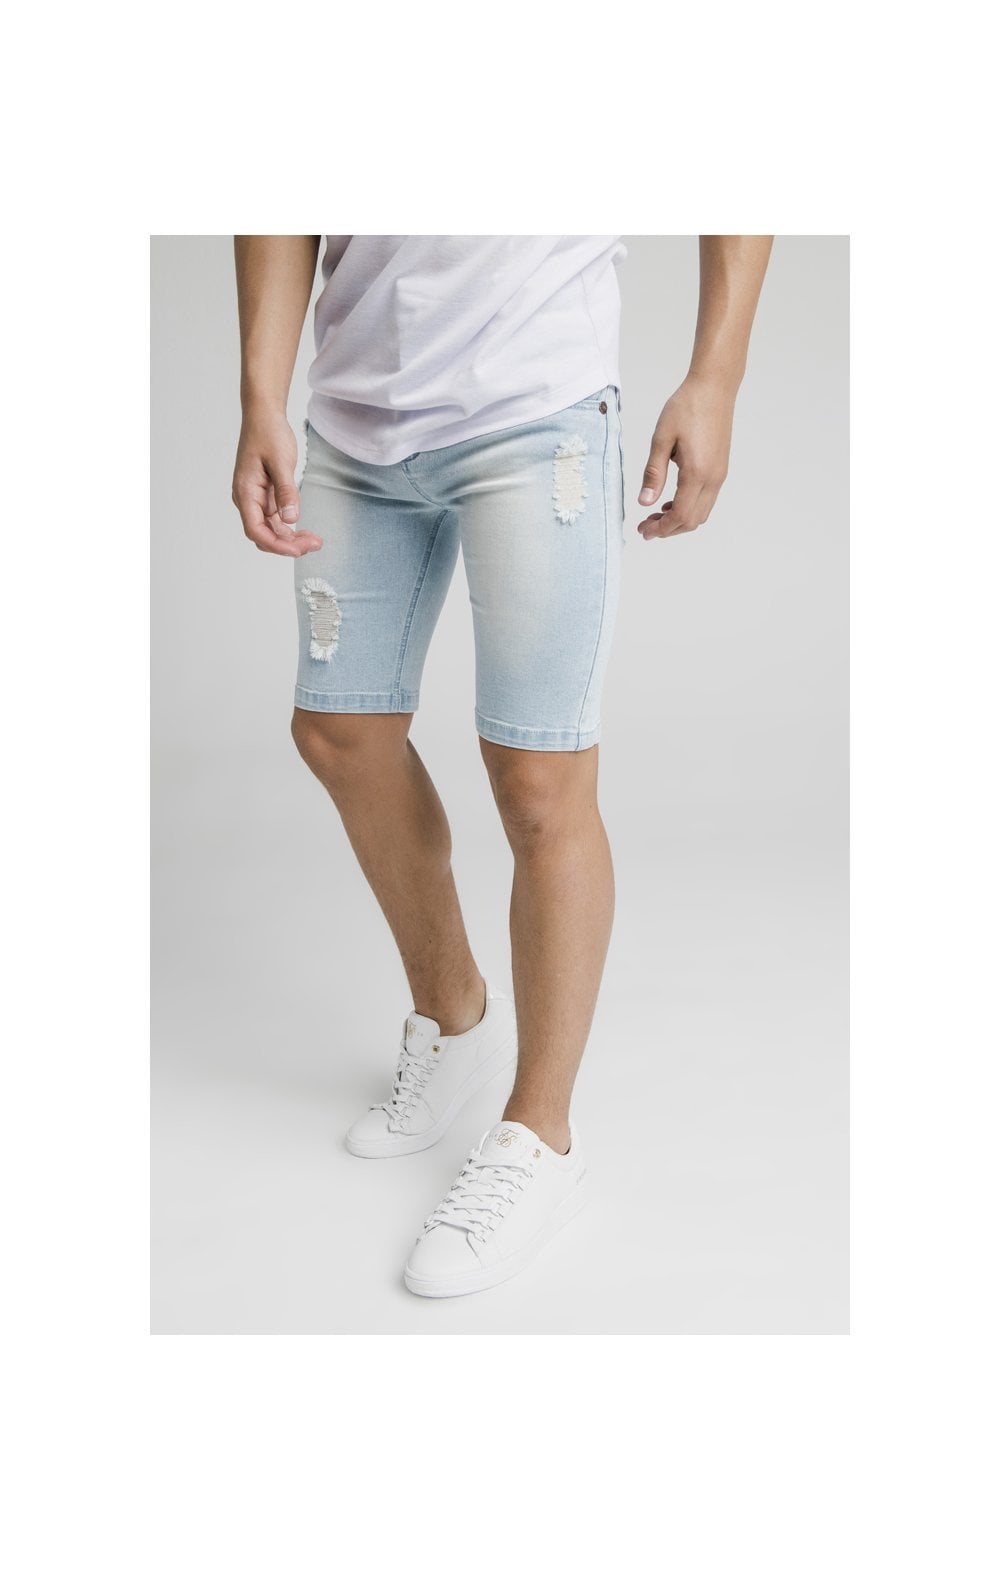 Illusive London Distressed Denim Shorts - Light Blue